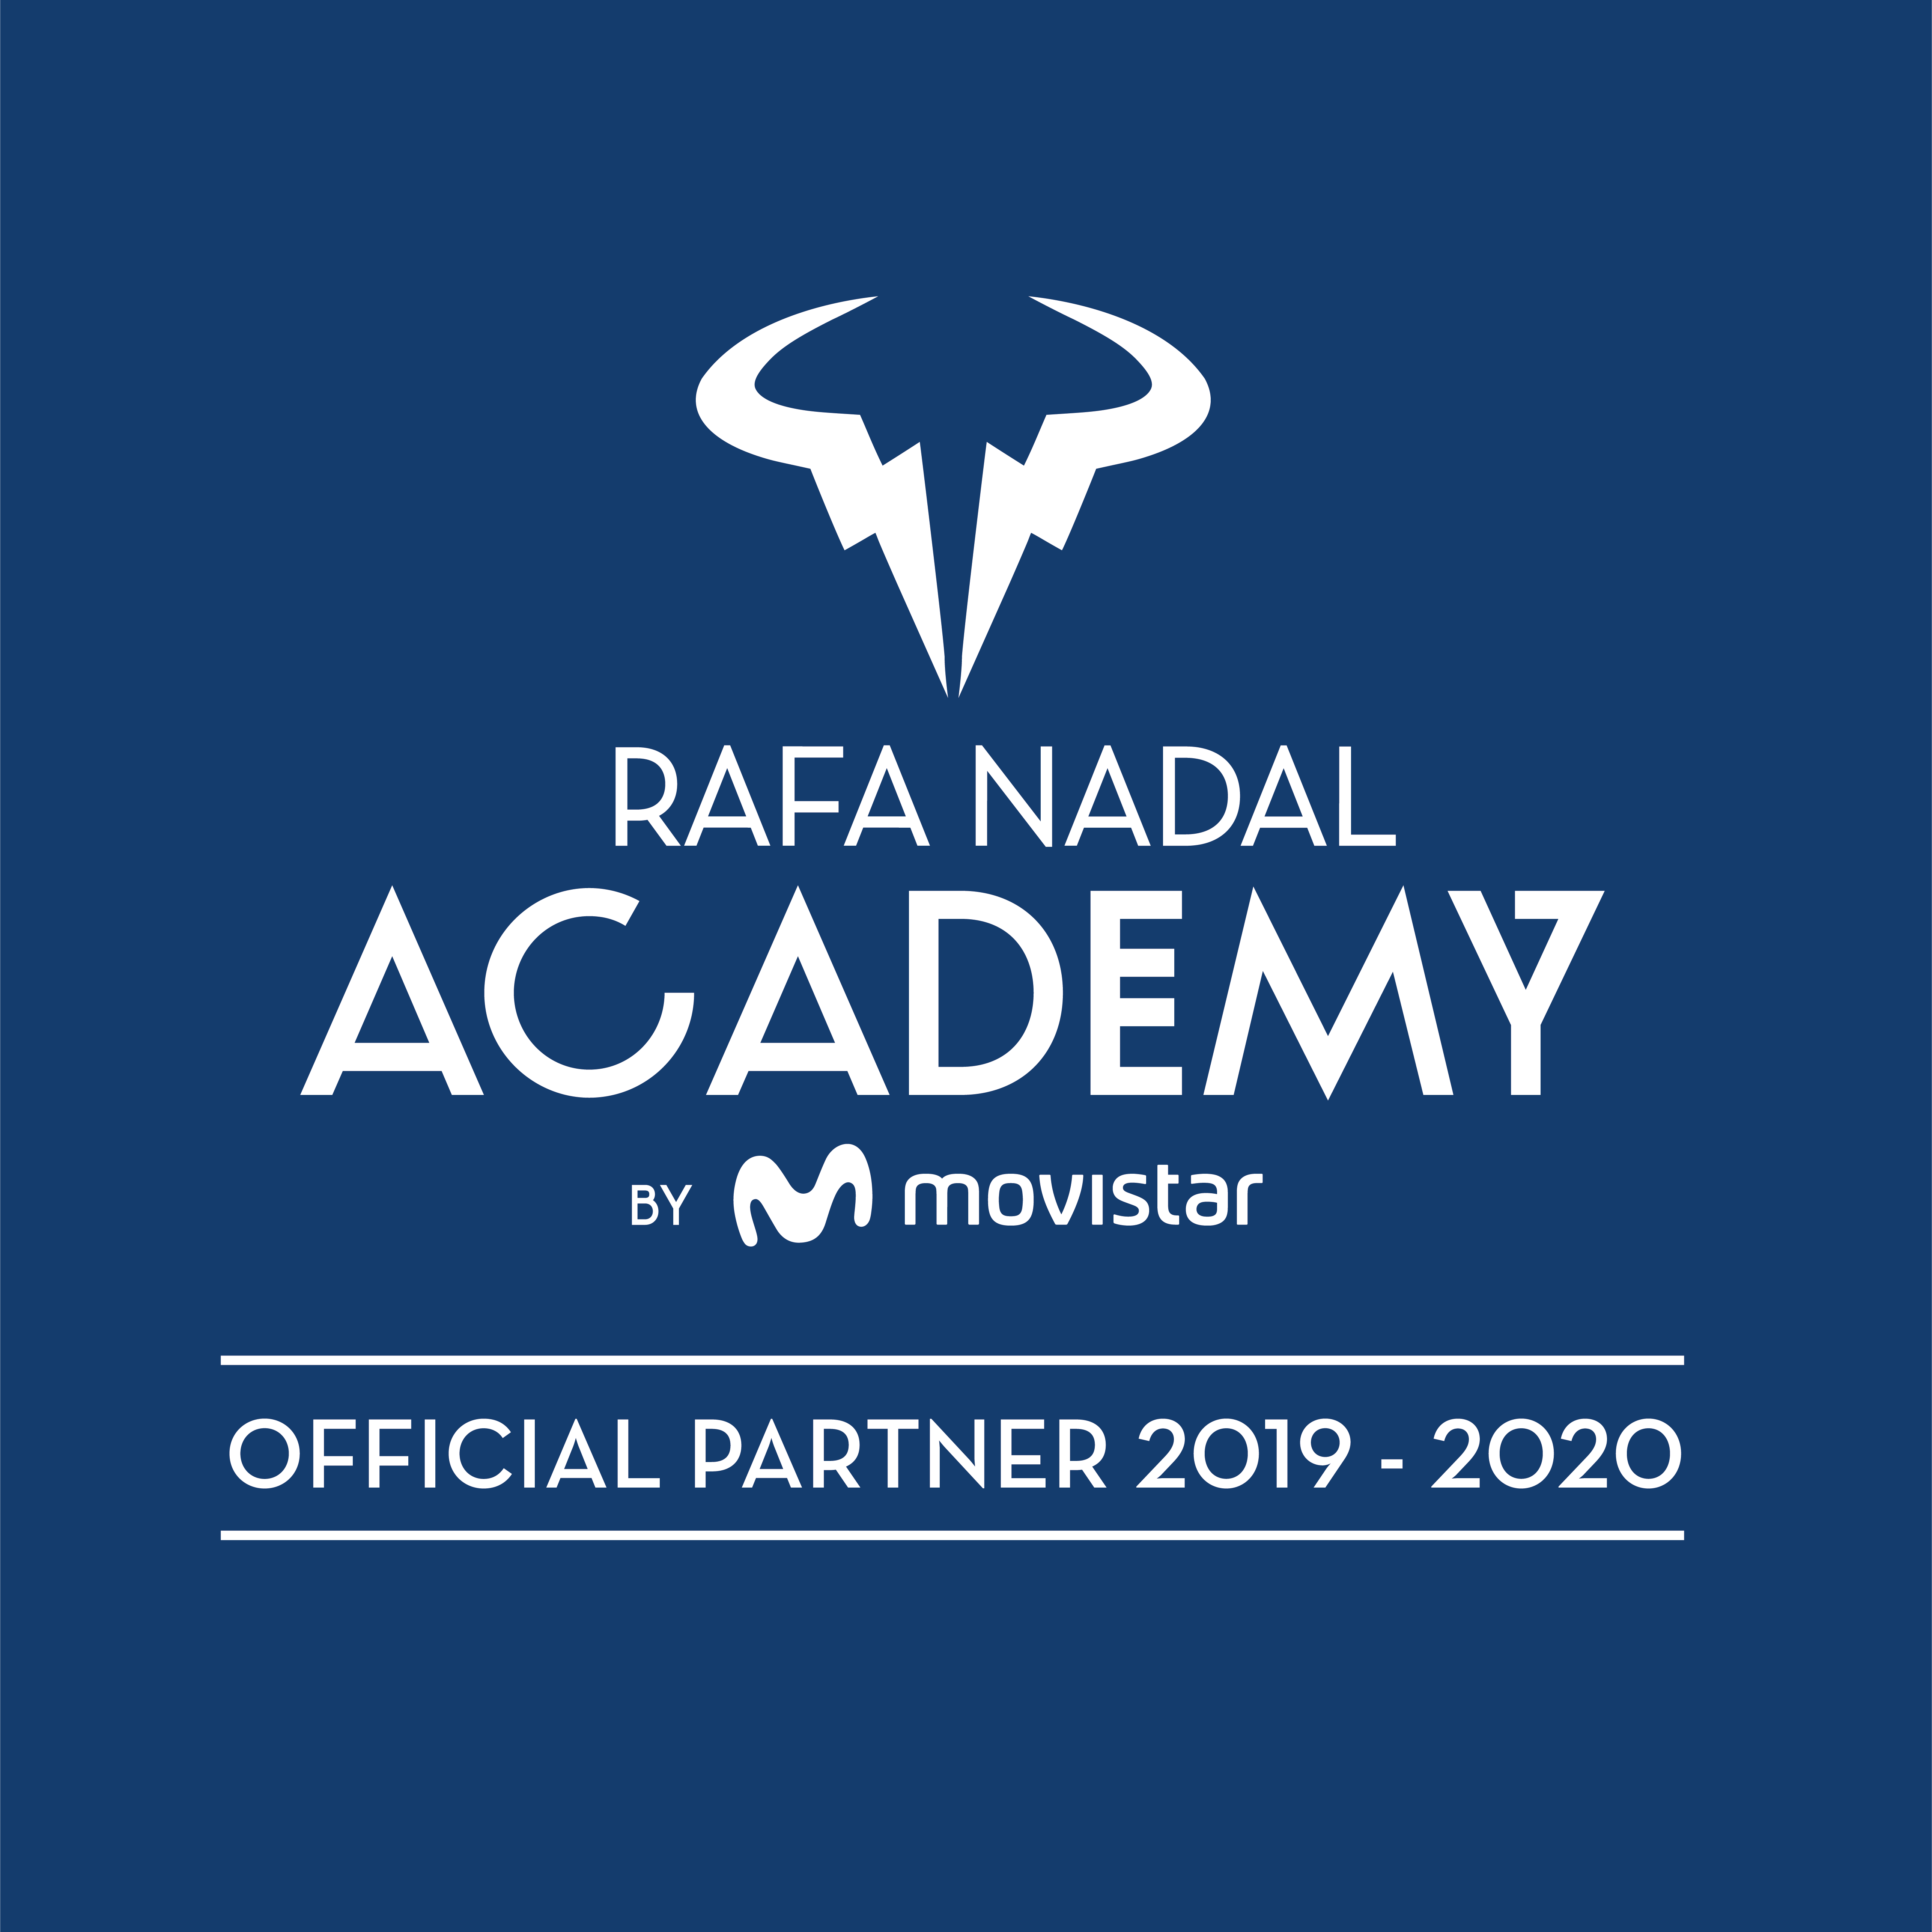 official partner of the rafa nadal sportcentre!